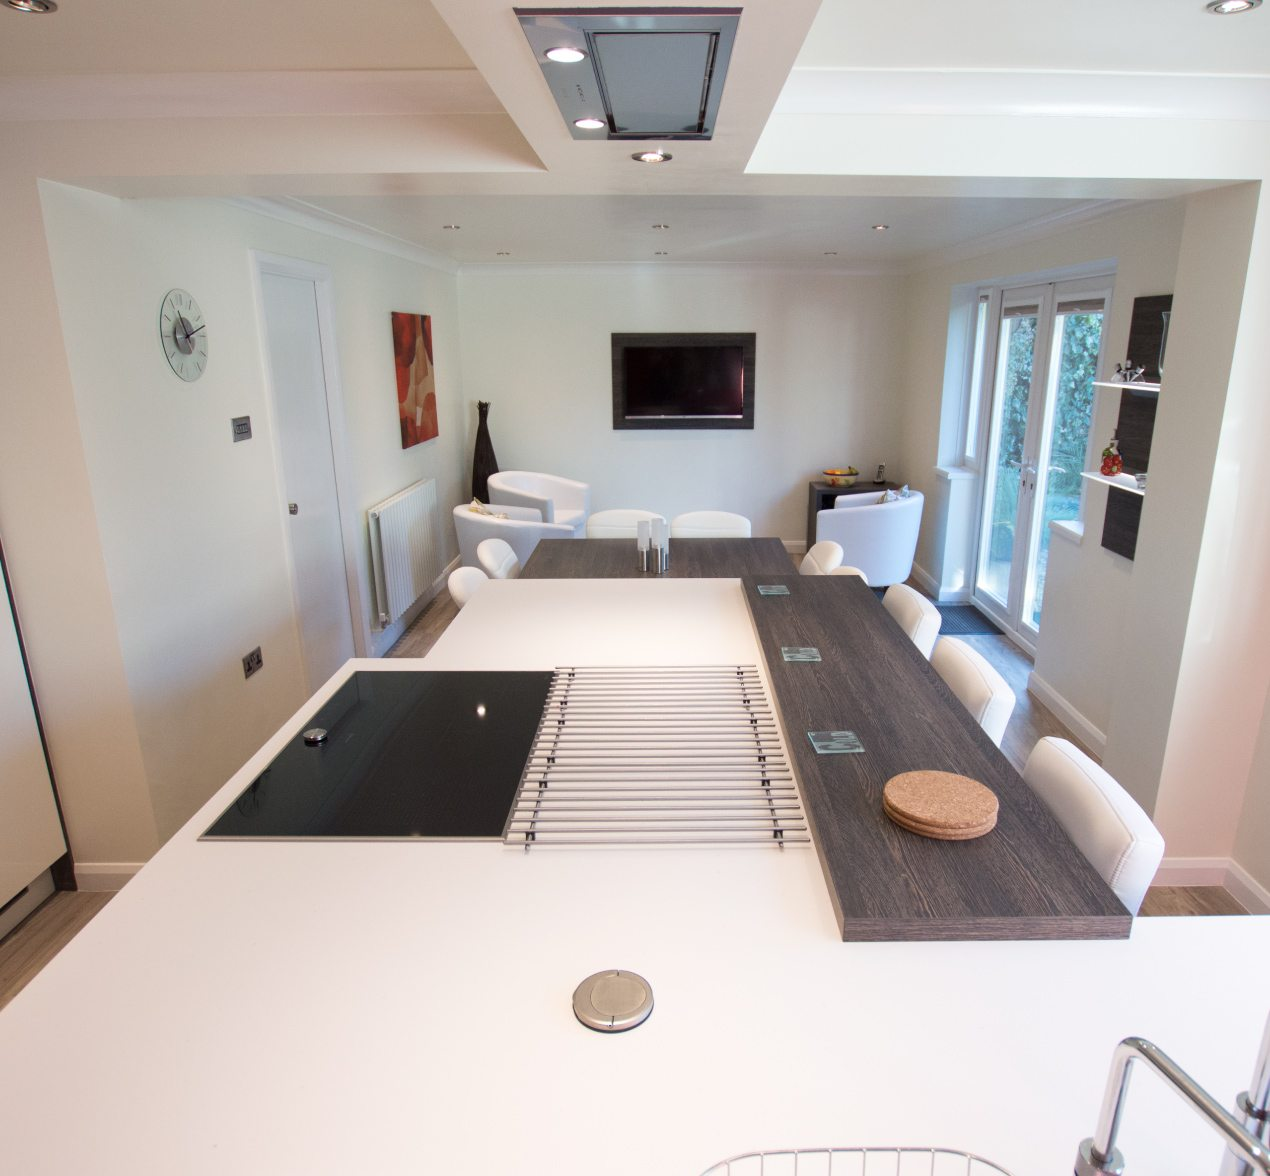 A Kitchen That Brings It All Together